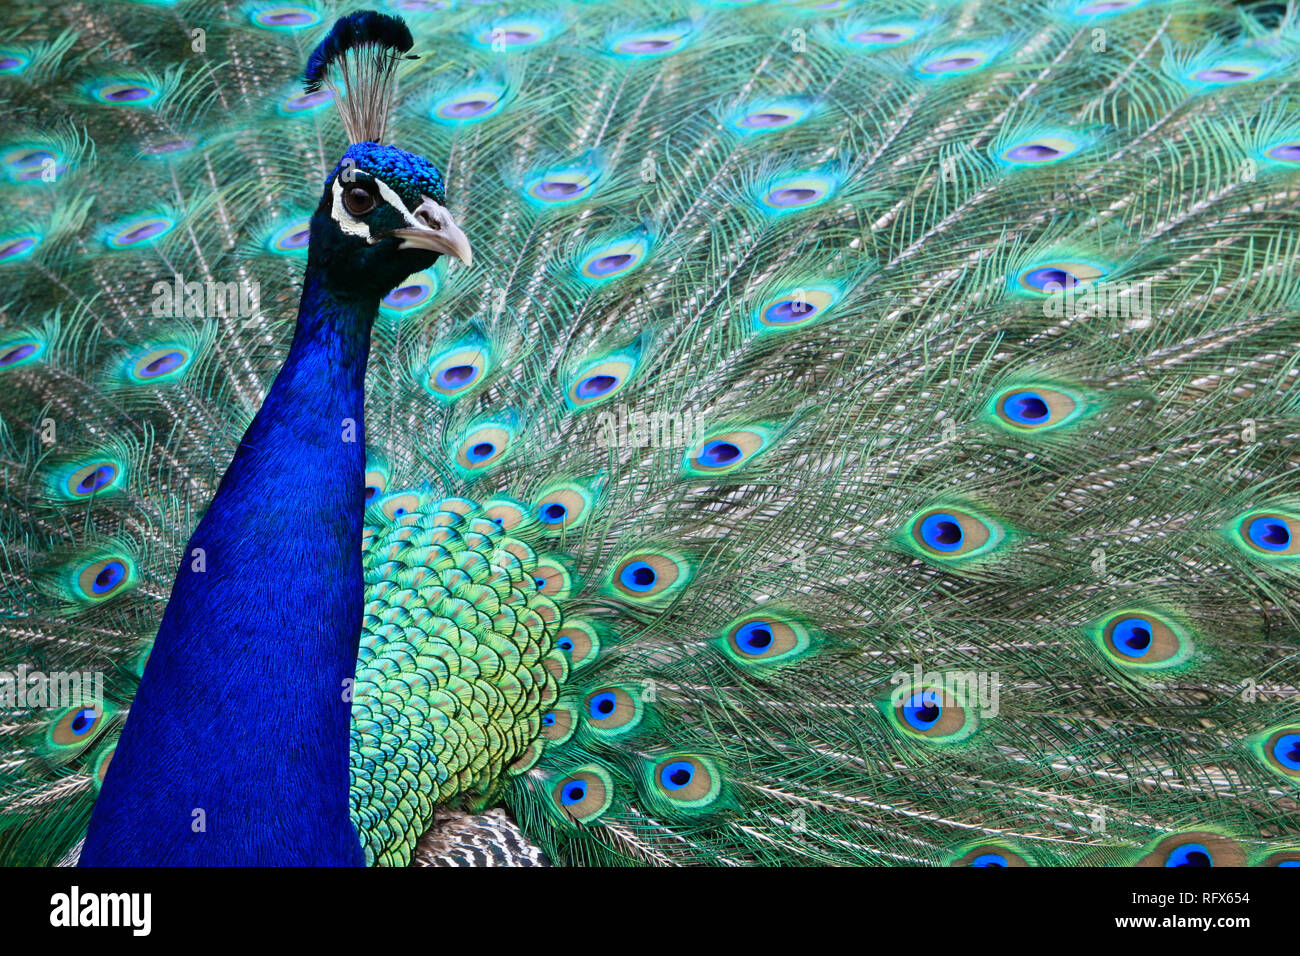 A male peacock wears and displays his brilliantly coloured feathers like a designer ball gown. Stock Photo